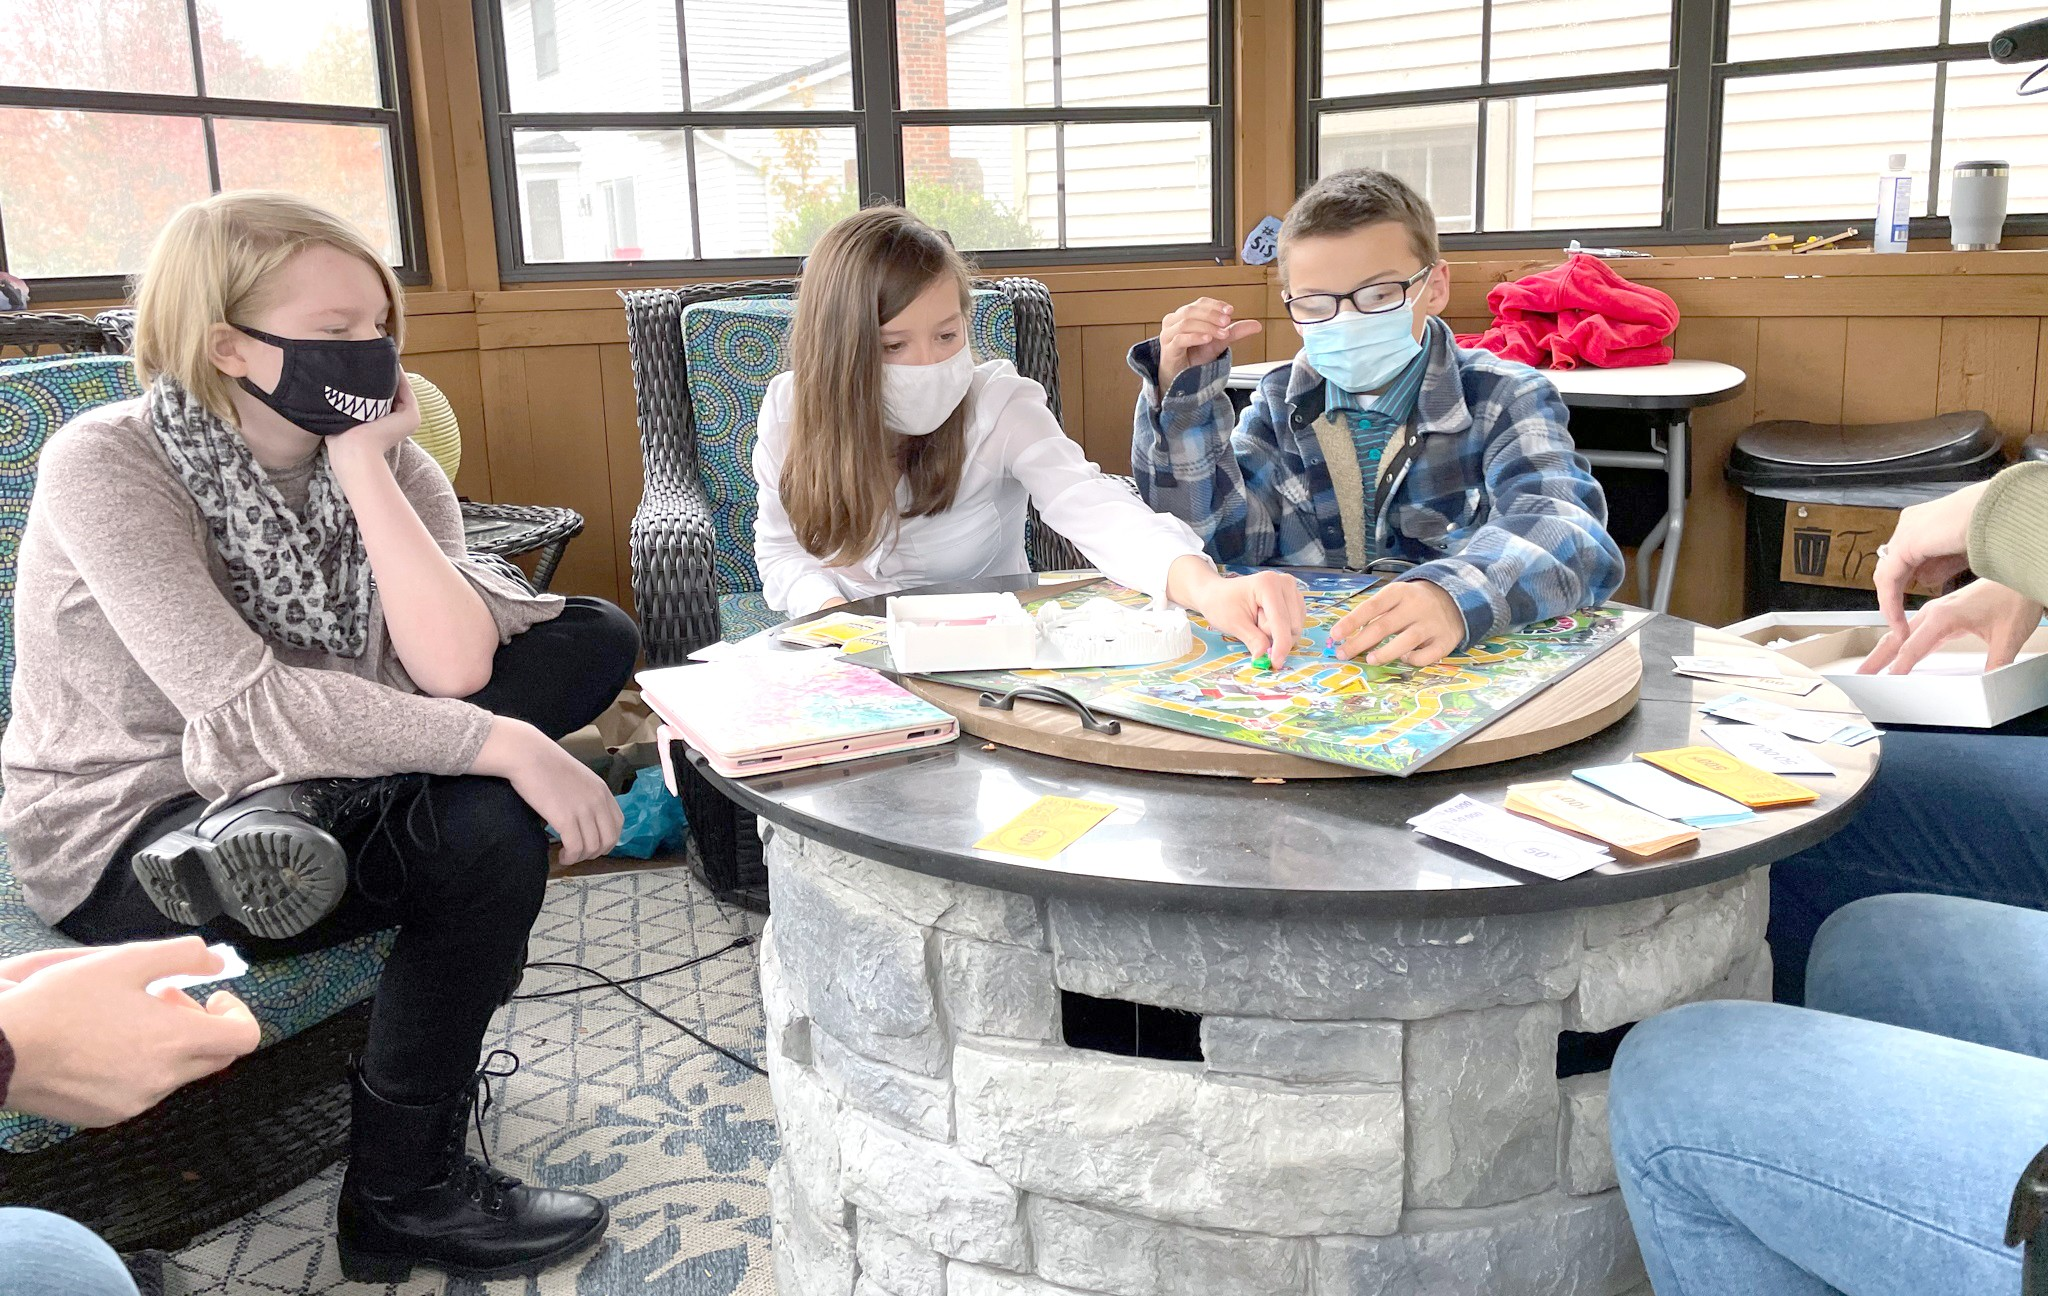 Kids at a family gathering play a game together while wearing masks. A new survey by The Ohio State University Wexner Medical Center finds nearly two in five report they will likely attend a gathering with either more than 10 people or people from outside their household. (Photo courtesy of The Ohio State University Wexner Medical Center)